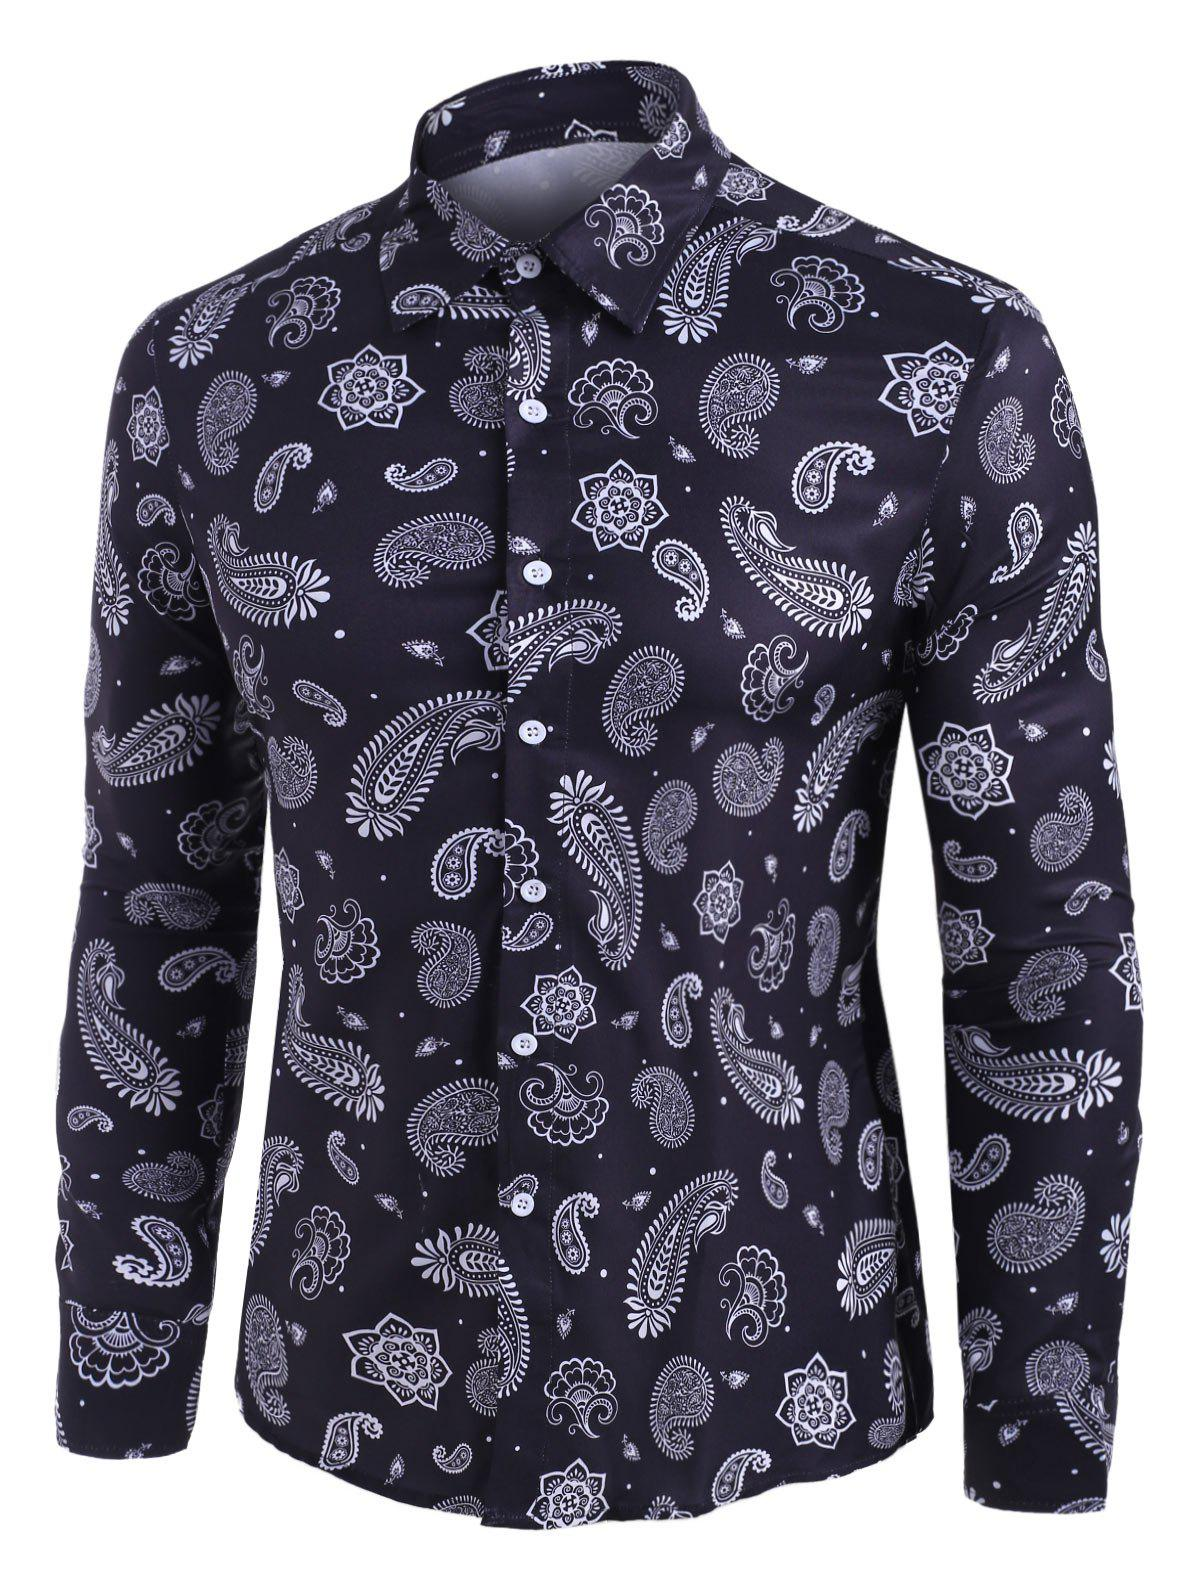 Paisley Print Long Sleeve Button Up Shirt фото